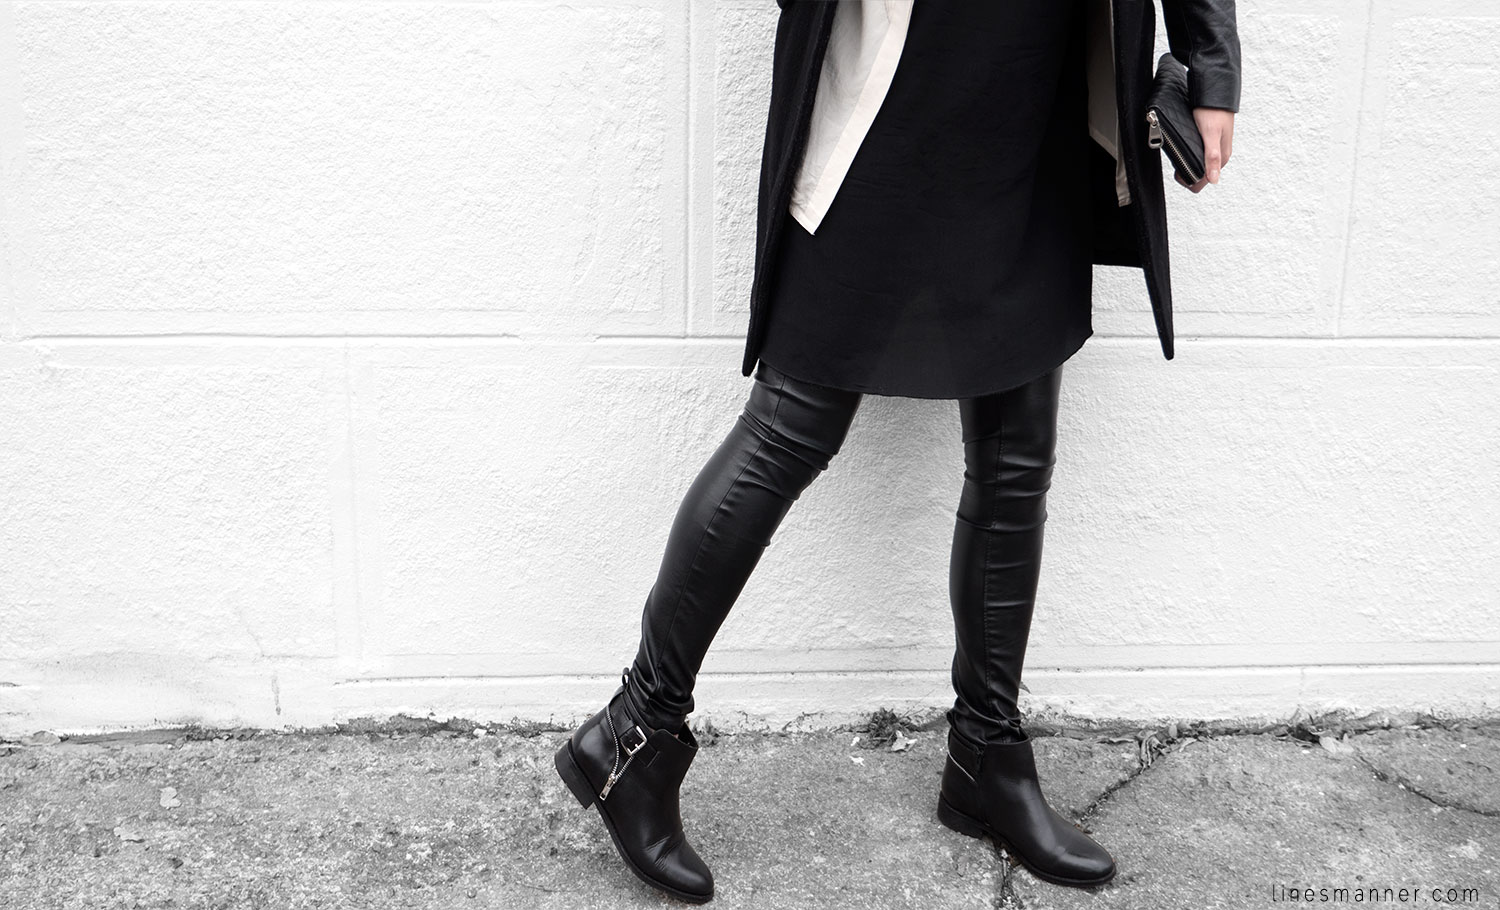 Lines-Manner-Timeless-Comfort-Essentials-Monochrome-Trend-Minimal-Textures-Fall-Leather-Details-Simplicity-Modern-Basics-Outfit-Structure-Relaxed-Leather-Luxurious-Sophistication-15